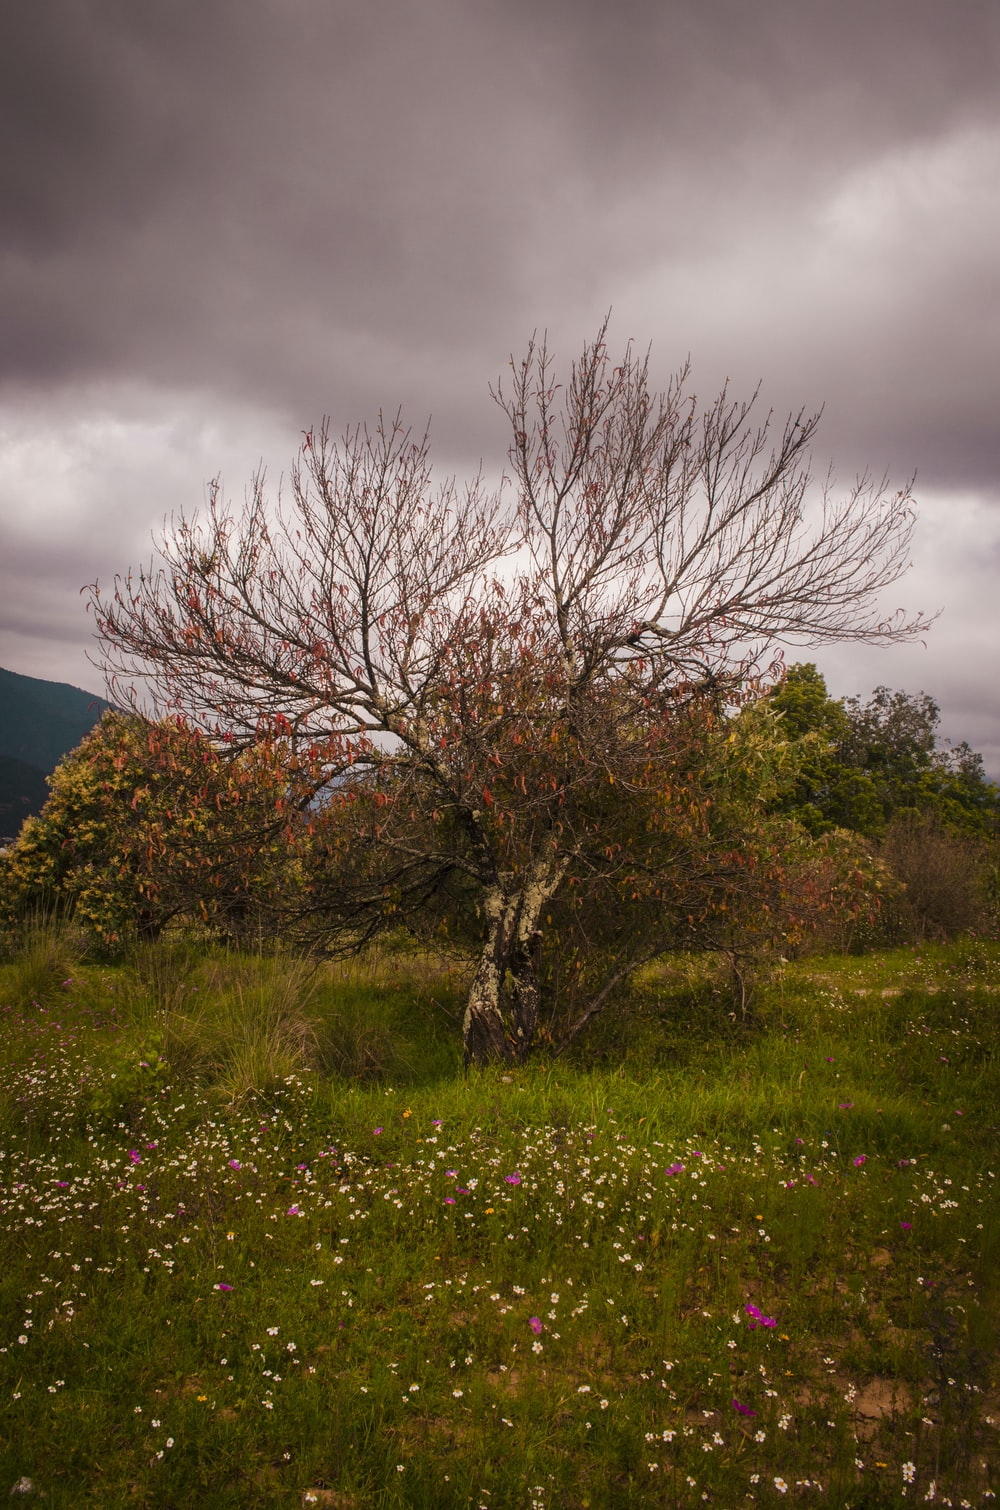 leafless tree on green grass field under gray cloudy sky